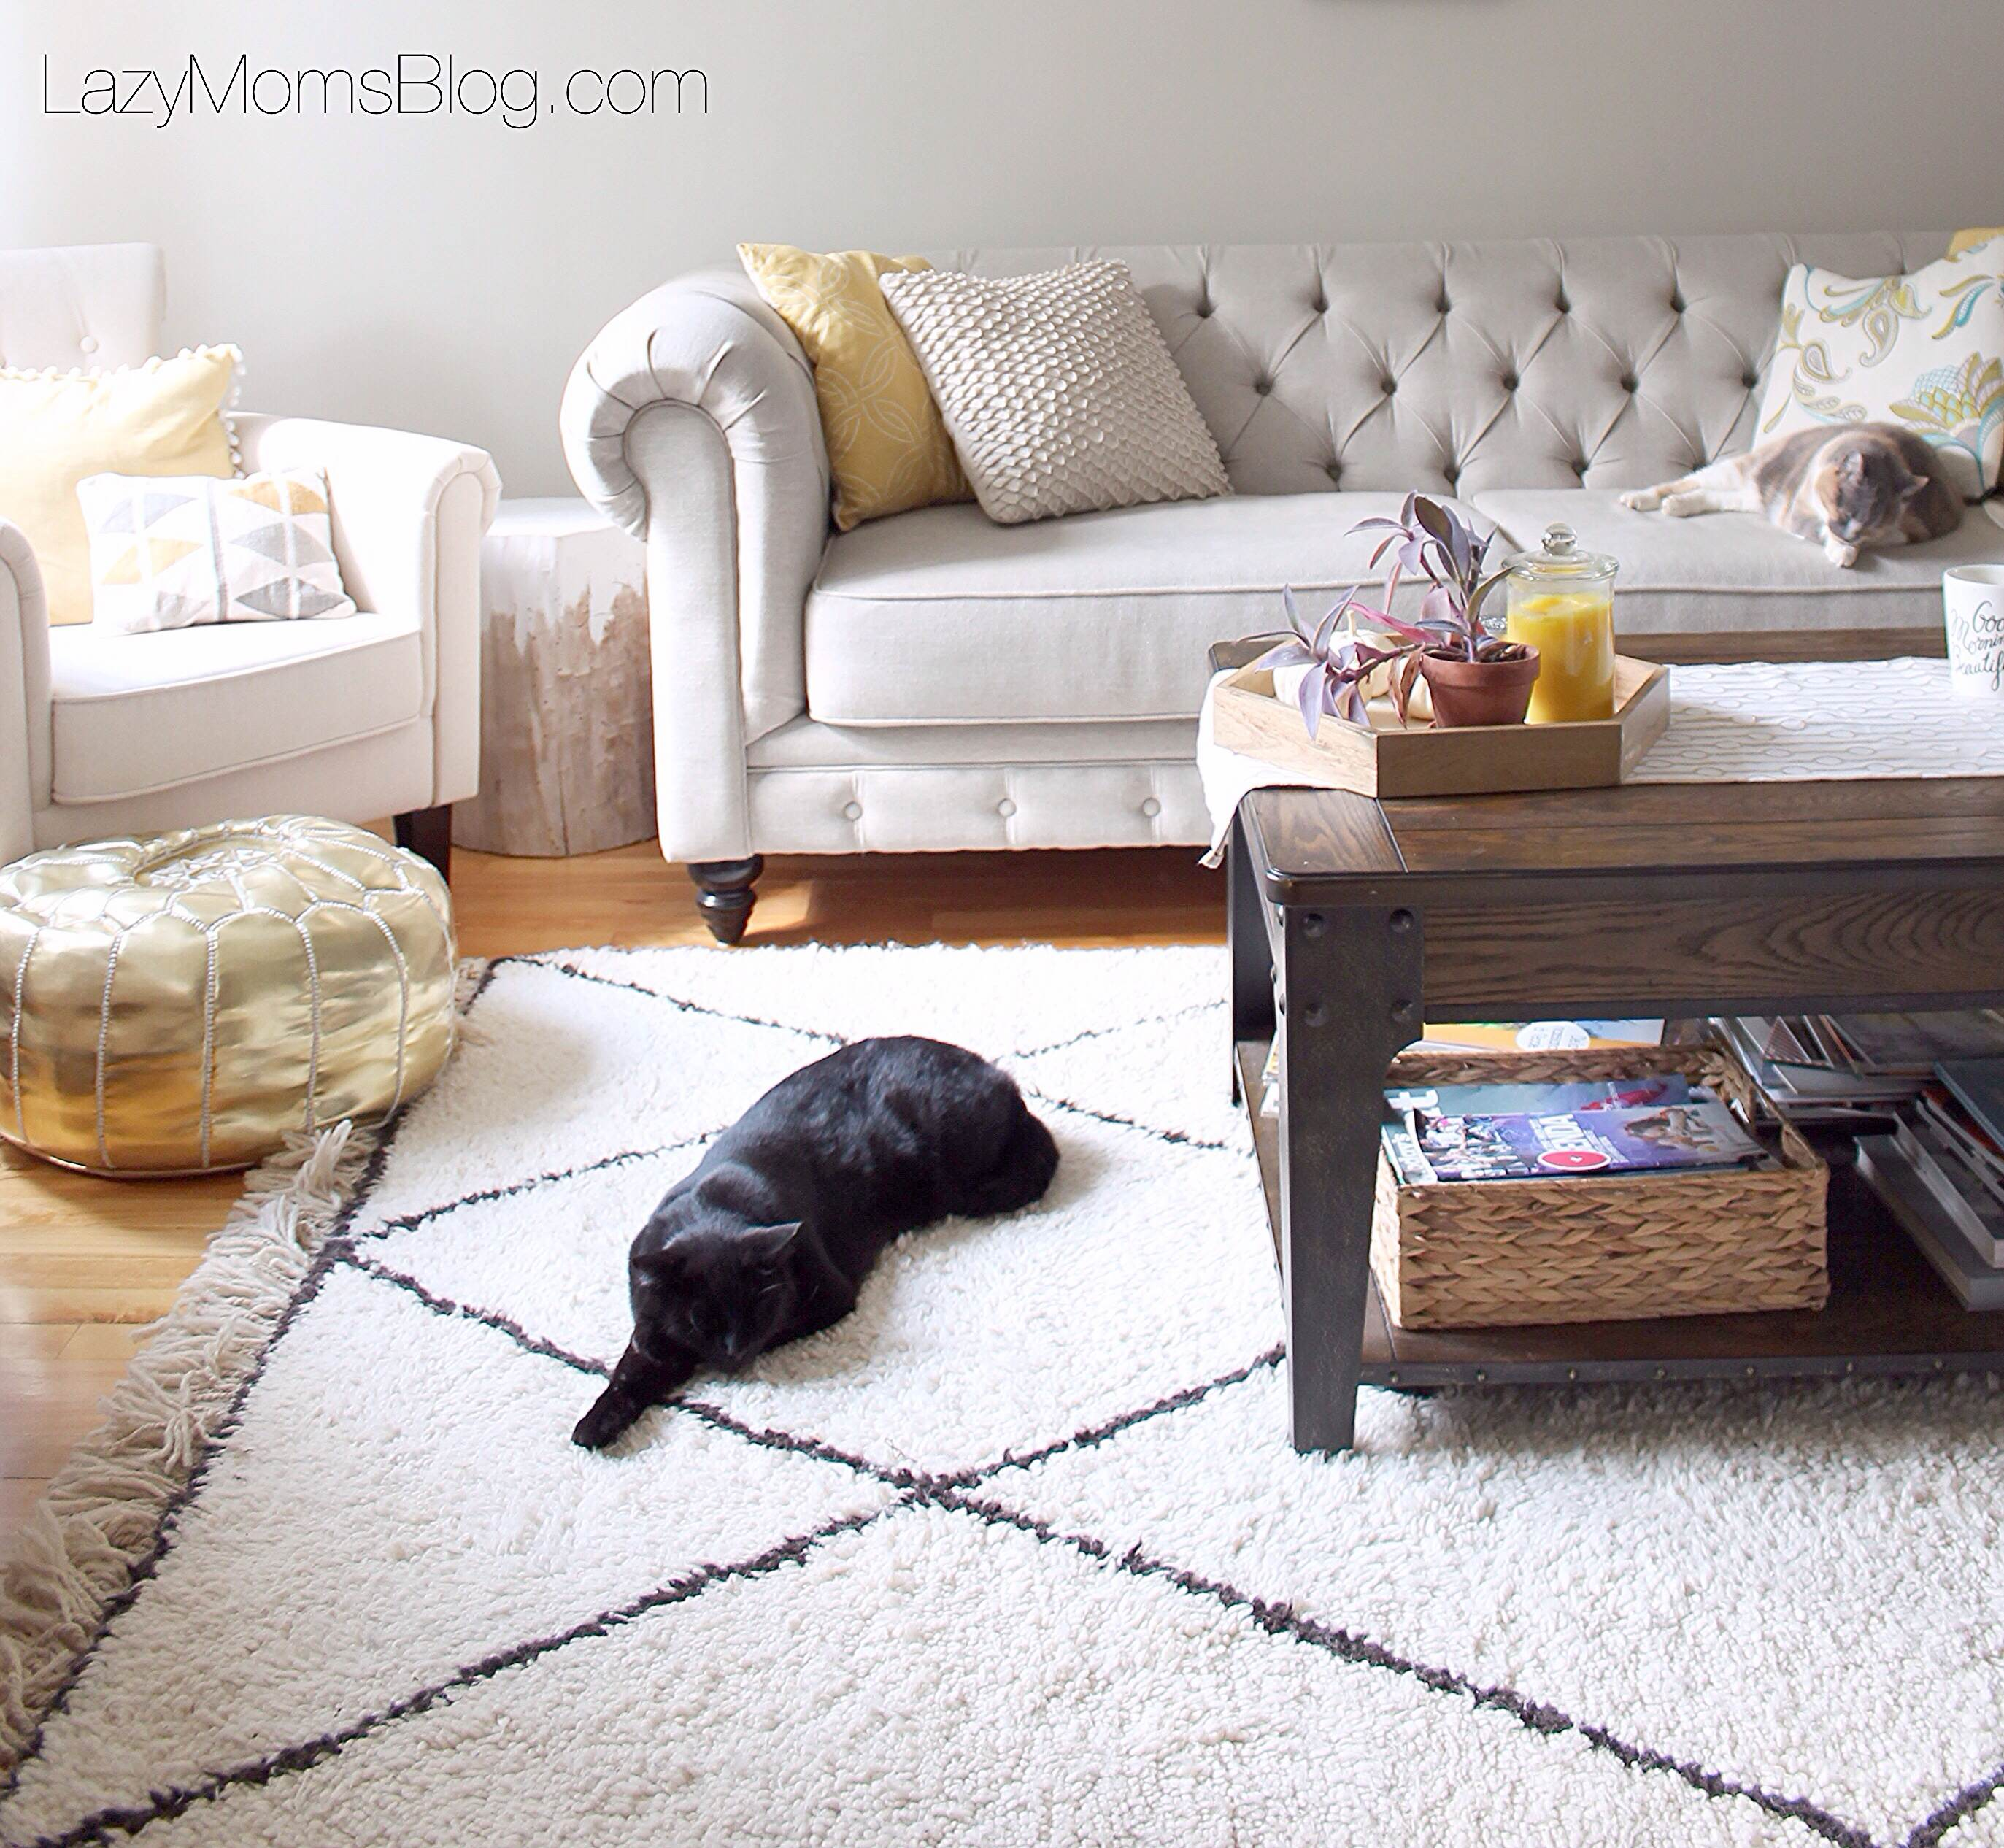 Cozy room must haves, and how to add more texture to any room!